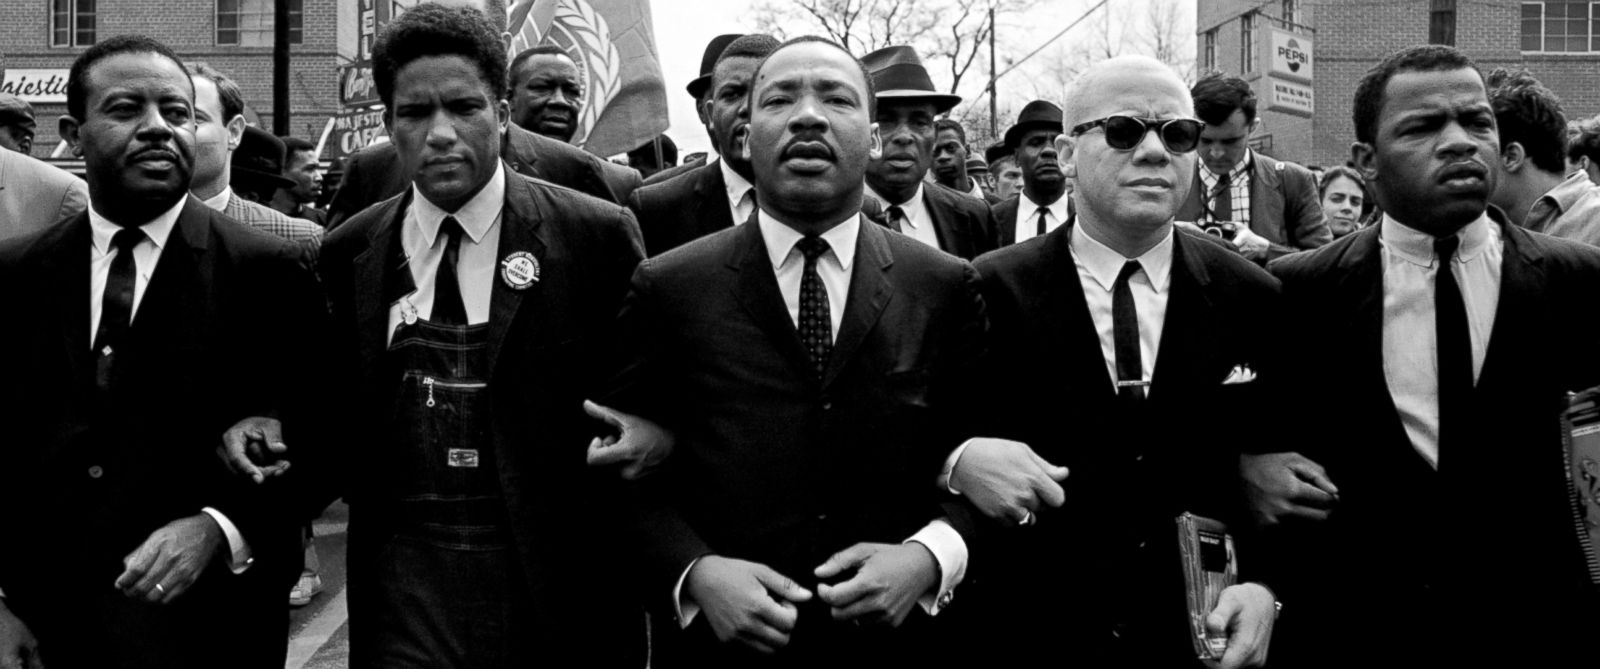 Dr. King Dreamt Of The Future While Taking Real Action In The Present